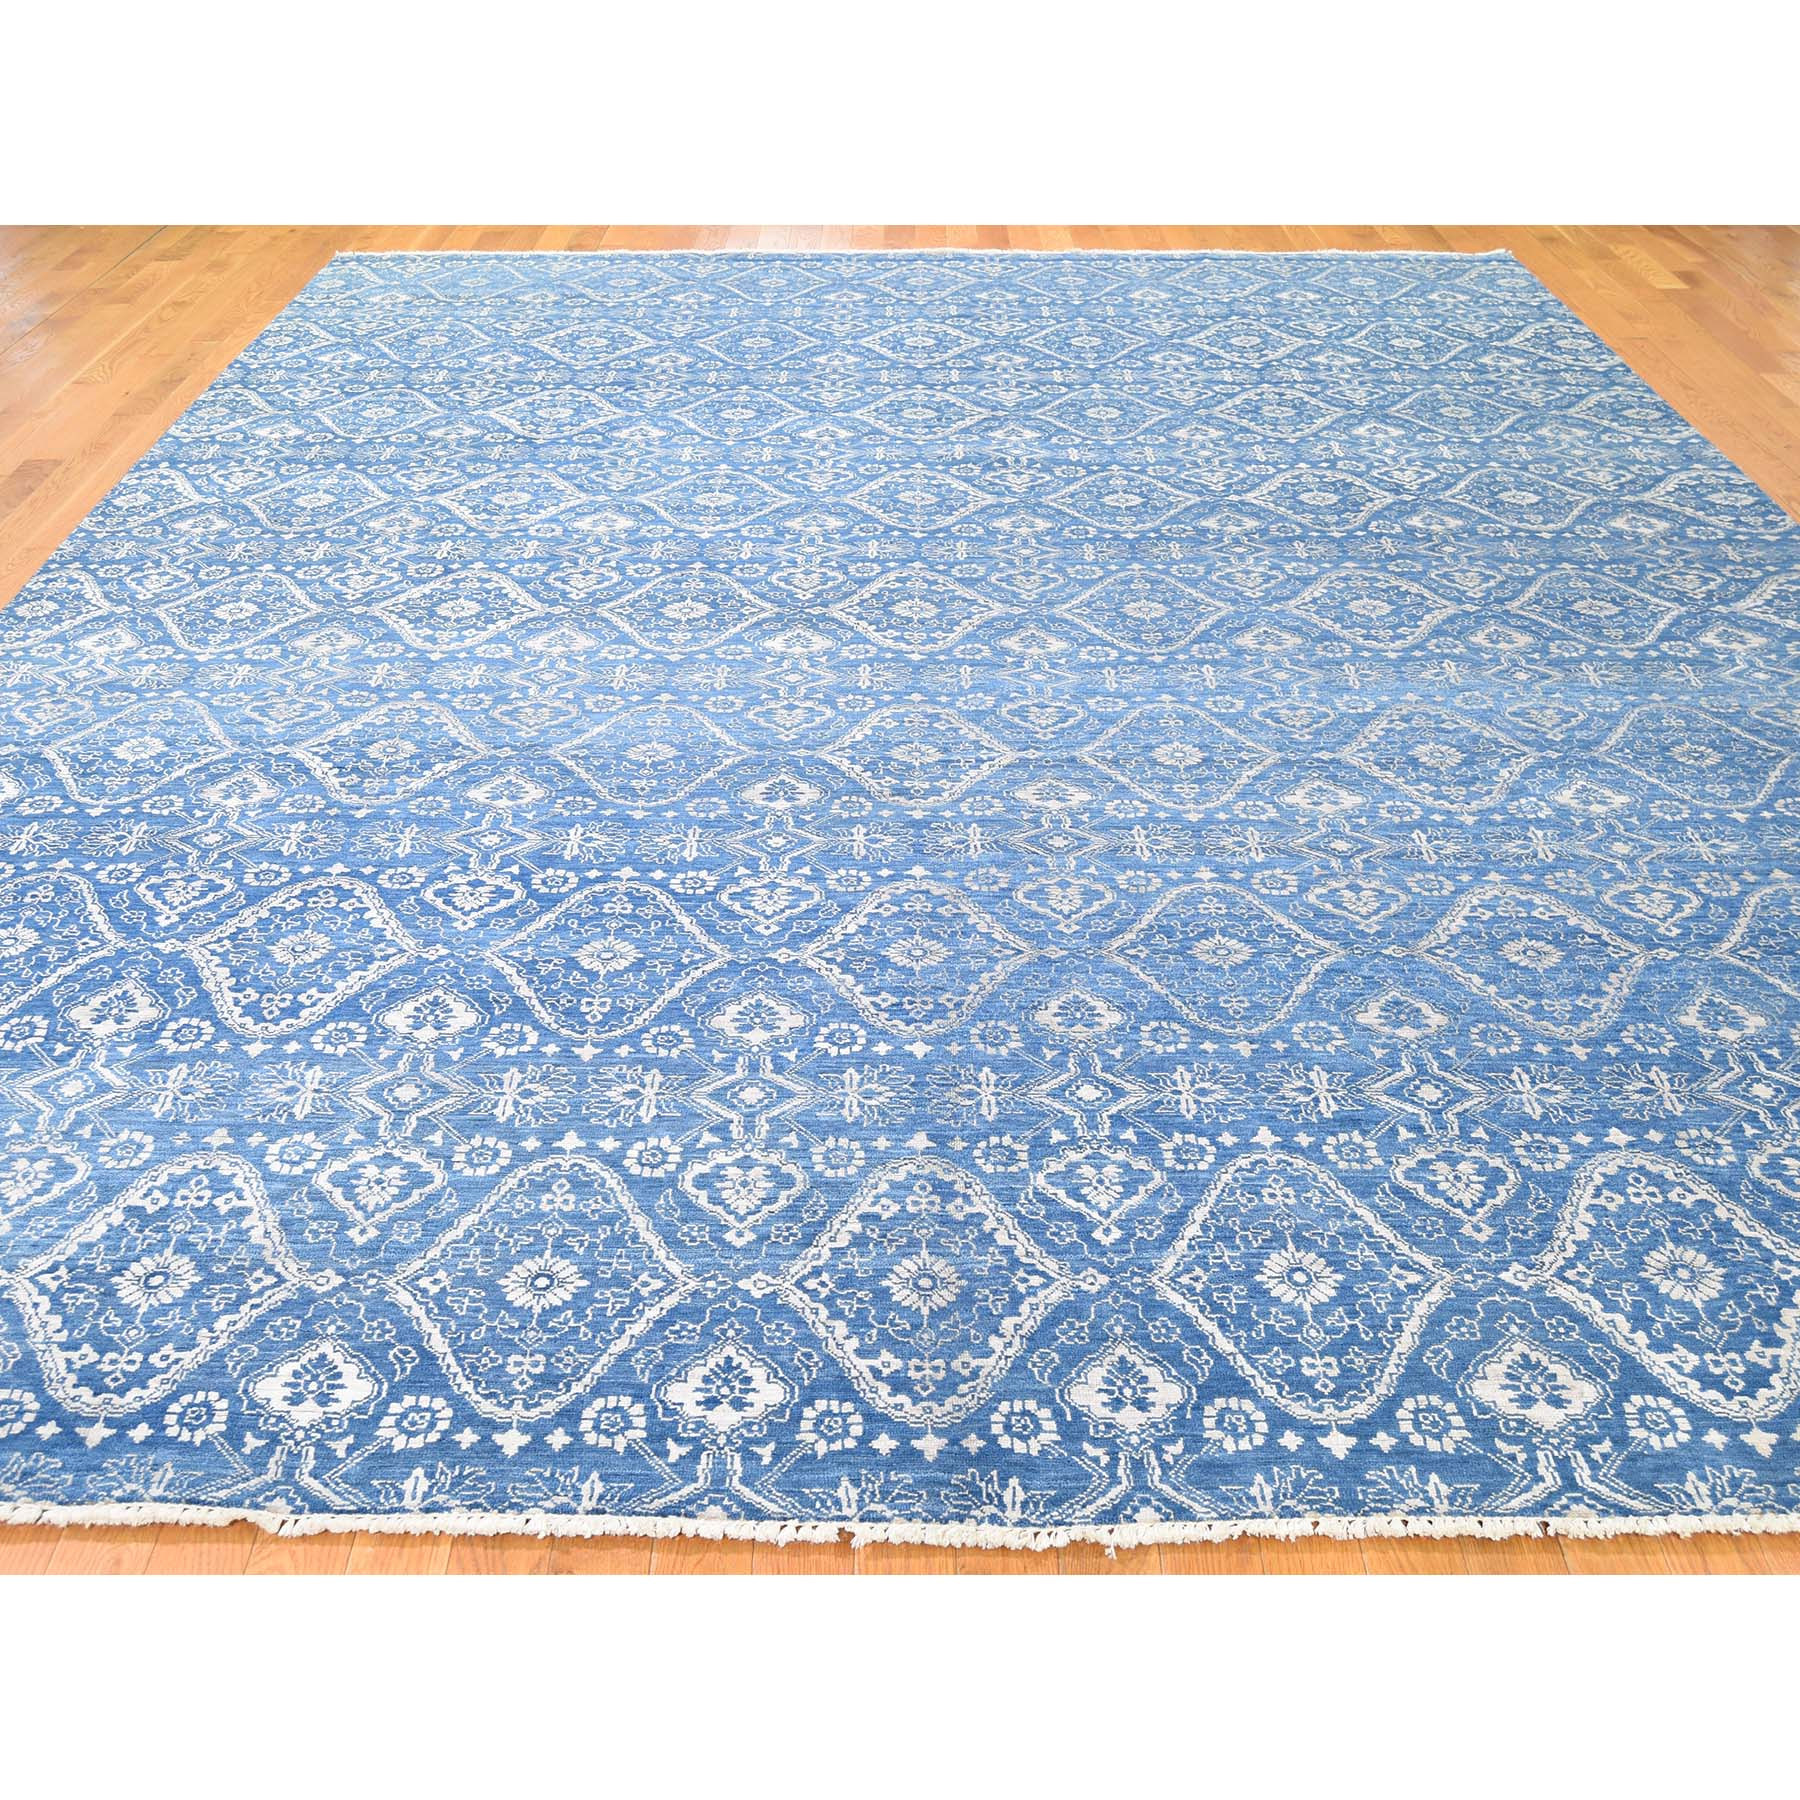 "Handmade Ikat And Suzani Design Rectangle Rug > Design# SH44740 > Size: 10'-0"" x 13'-0"" [ONLINE ONLY]"